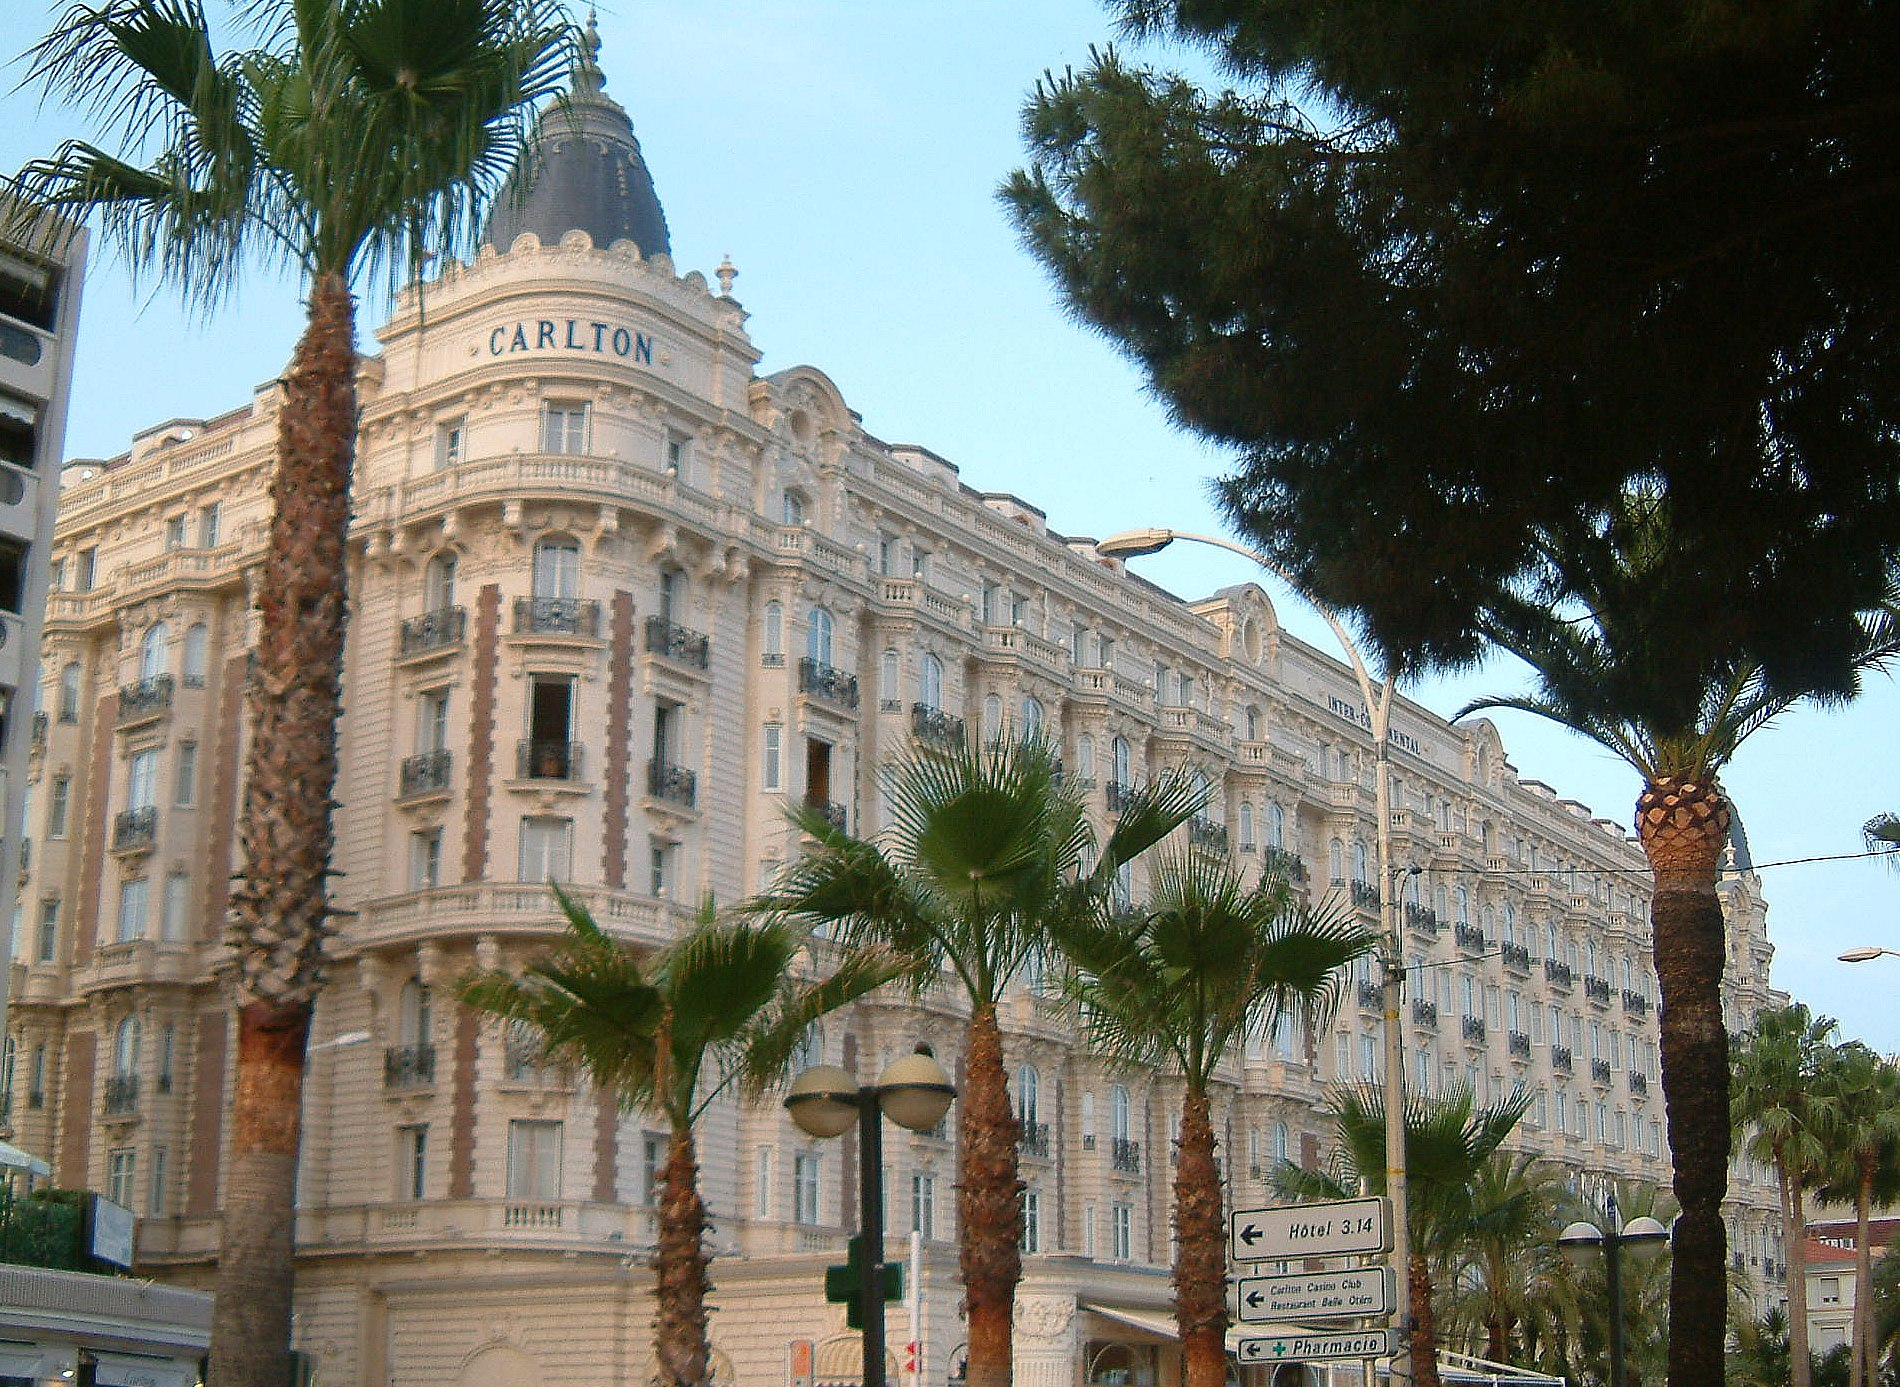 intercontinental carlton cannes hotel wikipedia